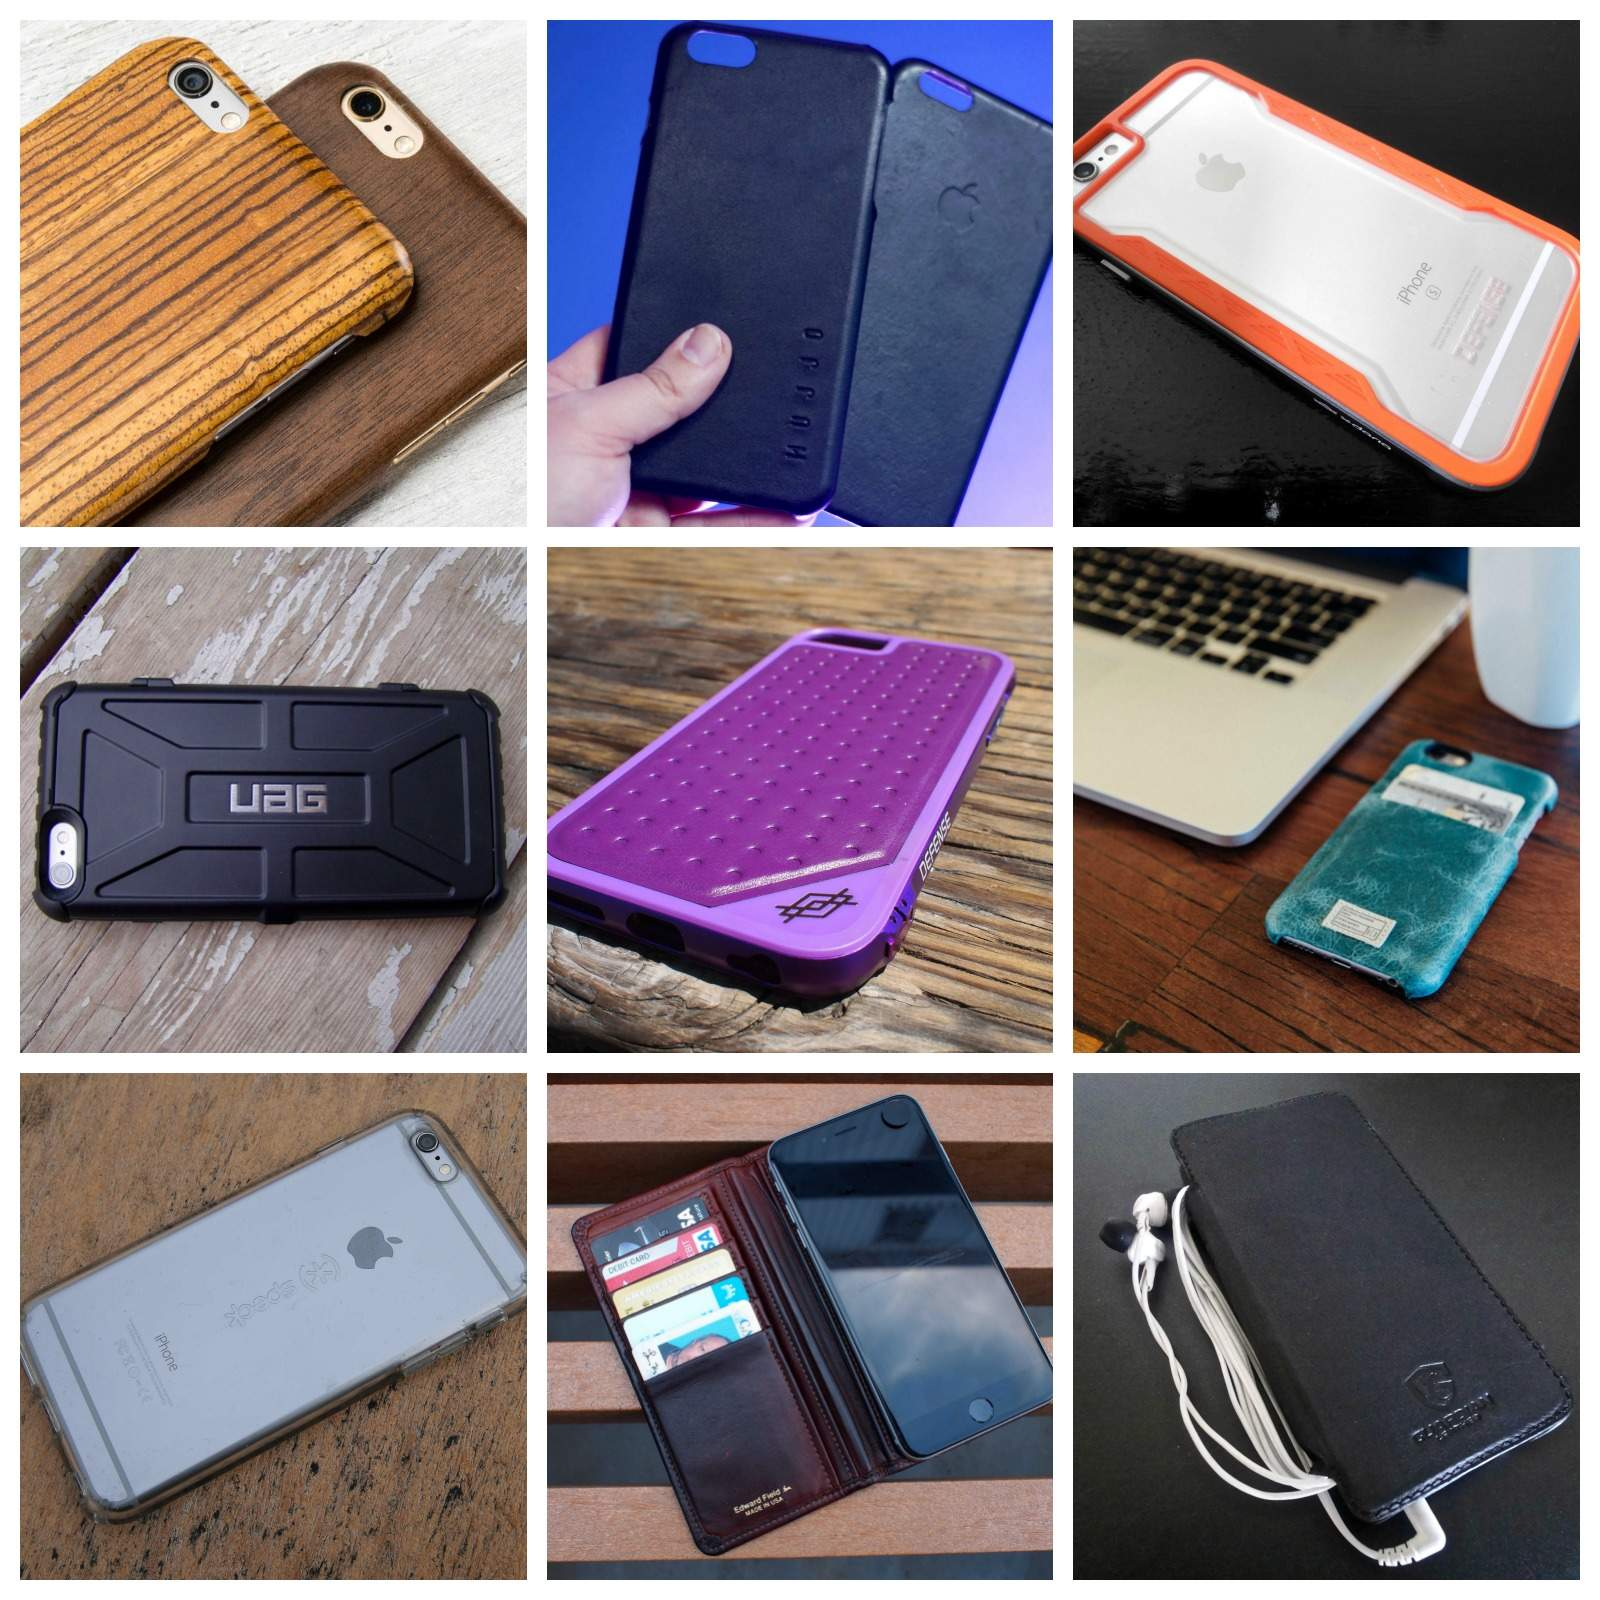 Best Iphone 6 Cases Reviewed Rugged Wallet Minimal Amp More